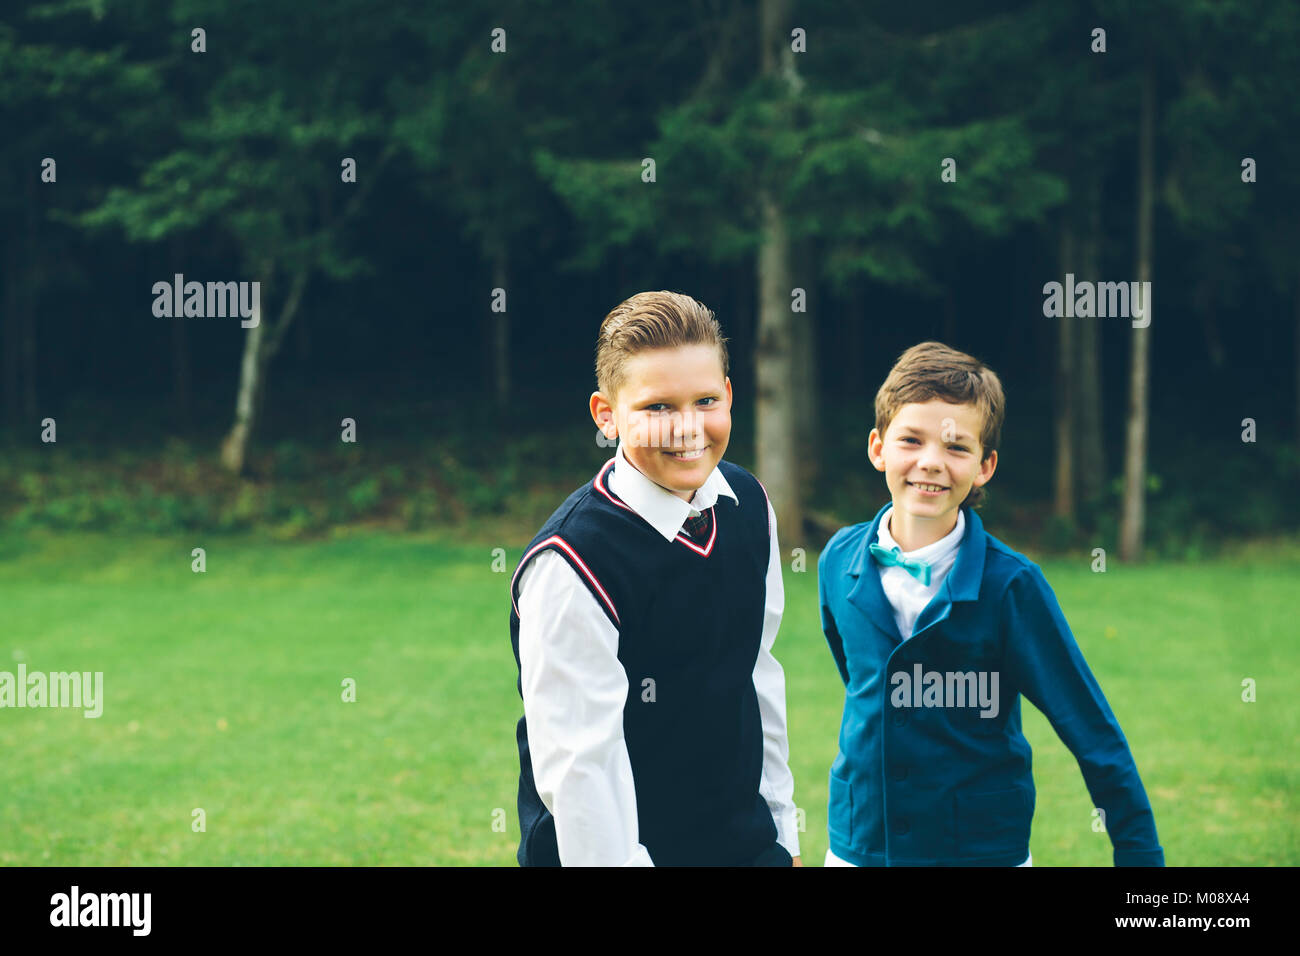 Brothers try to pose for a portrait in their formalwear. - Stock Image